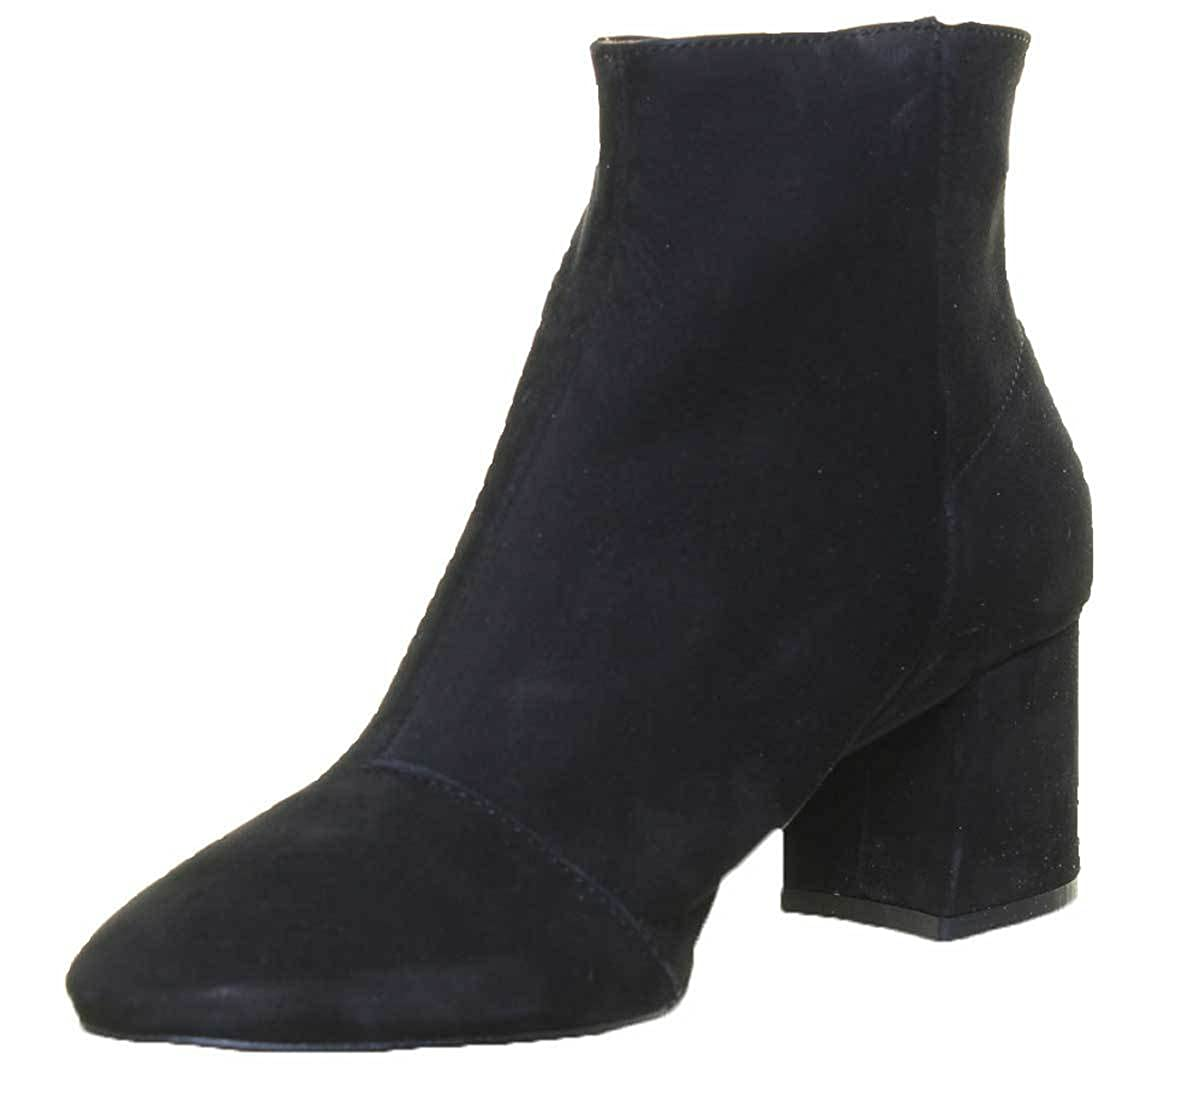 36703c02988c Amazon.com  Justin Reece 7300 Womens Super Soft Ankle Boots (3 UK, Black  Suede)  Shoes